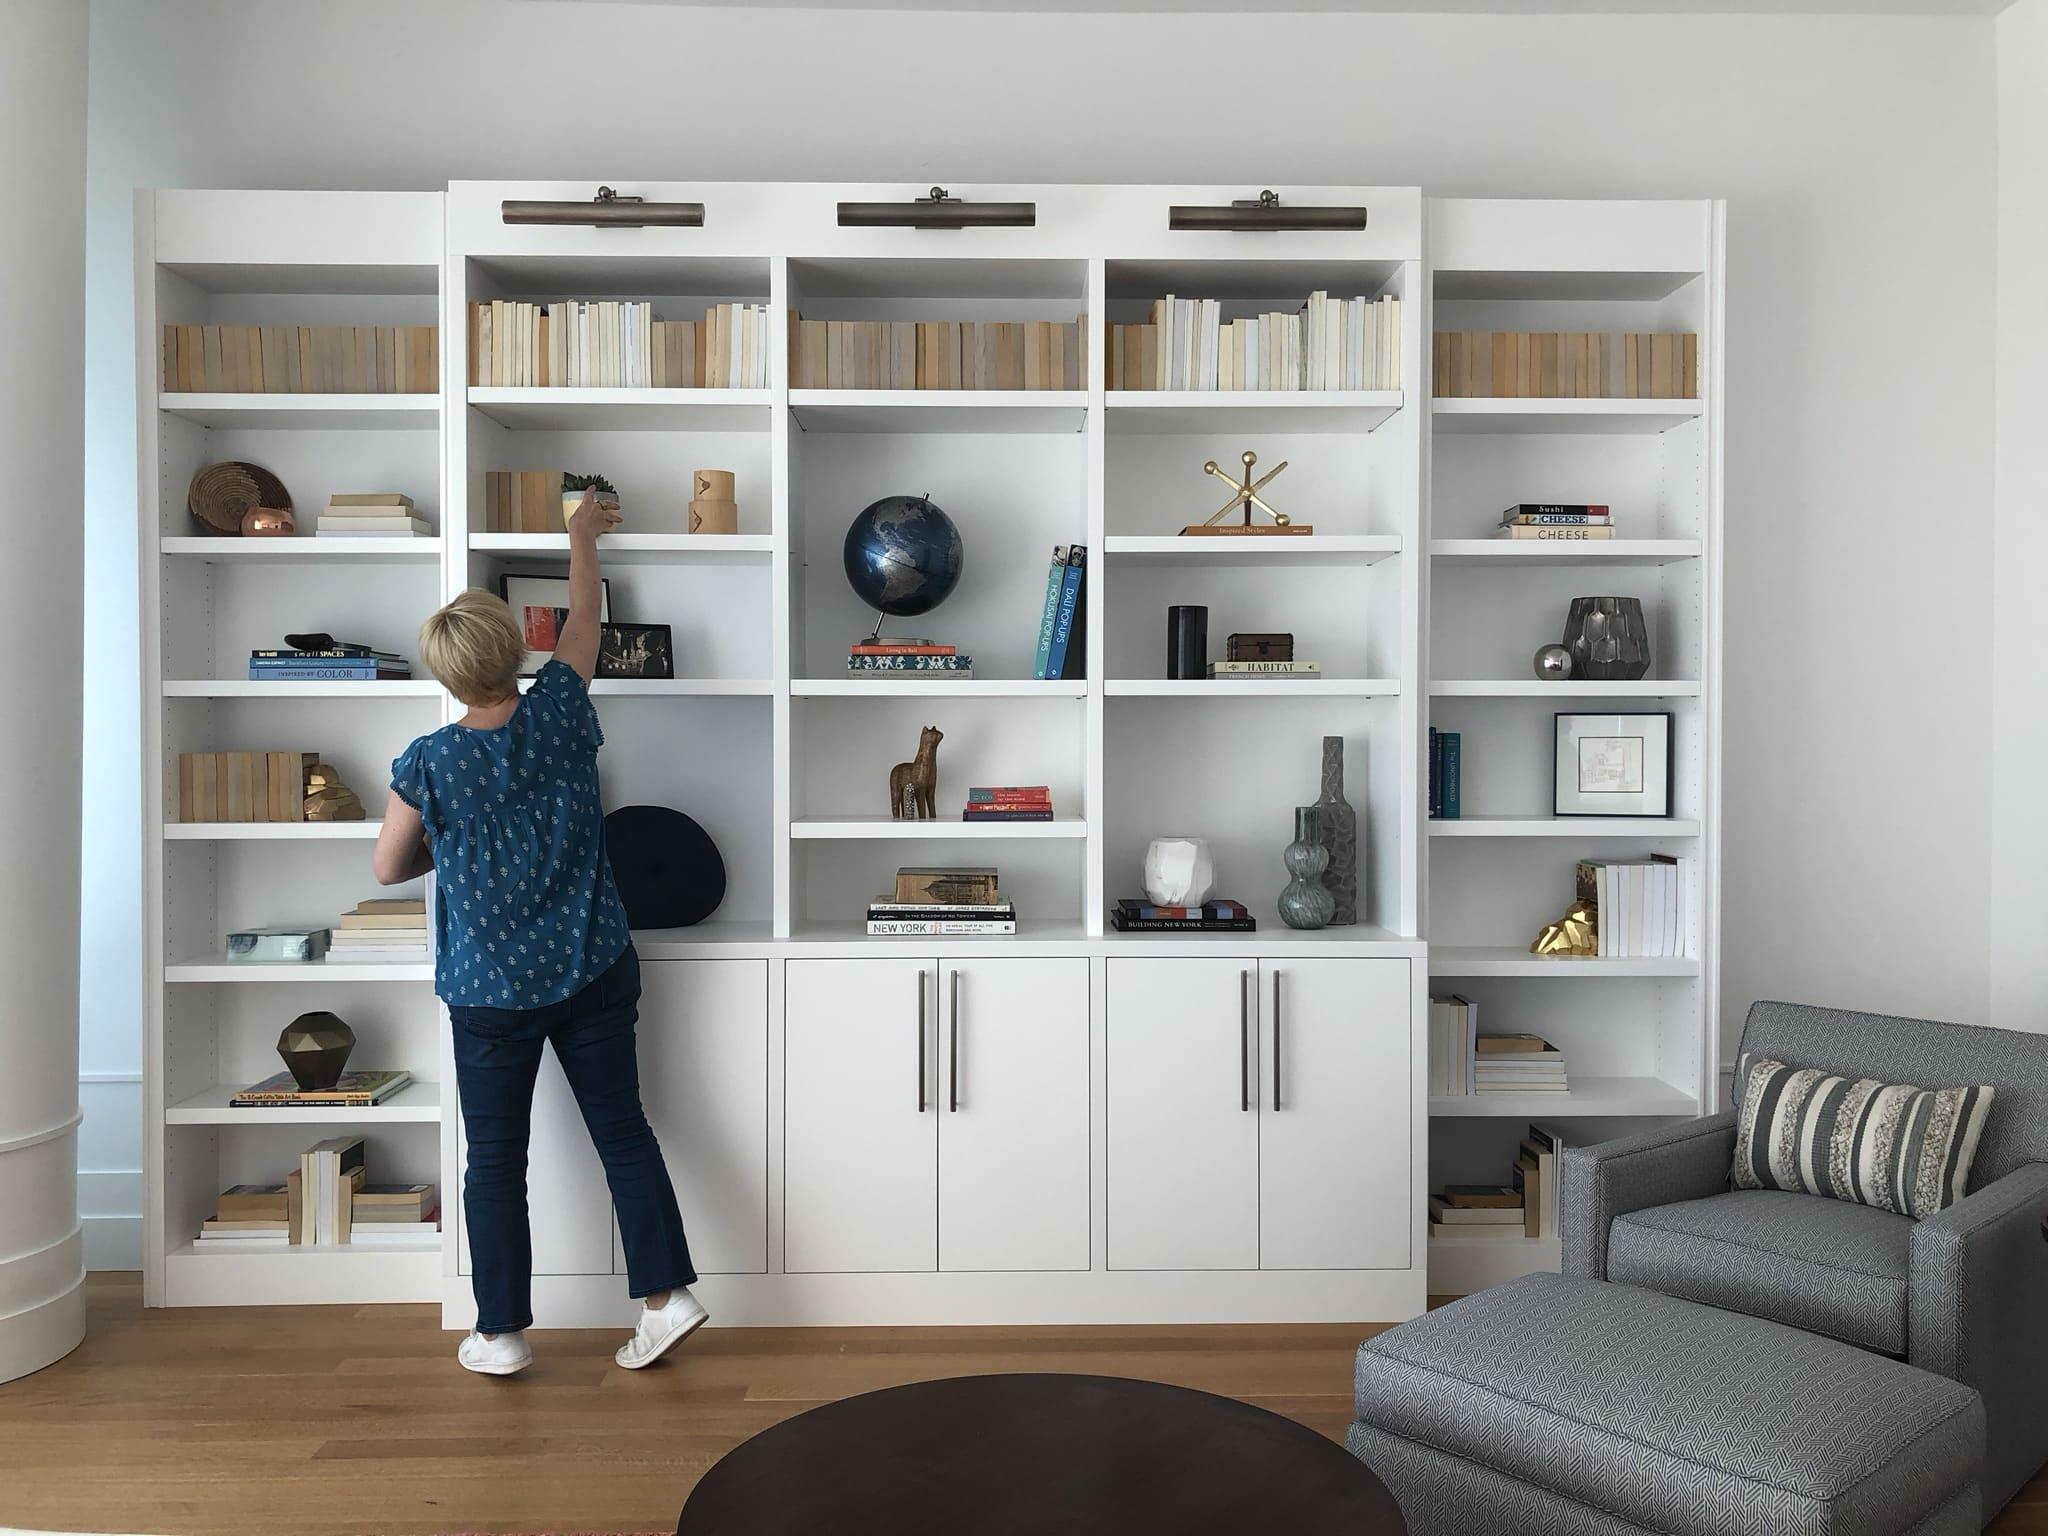 final stages of bookcase styling tutorial given by designer darci hether. session takes place in a midtown apartment in new york city.